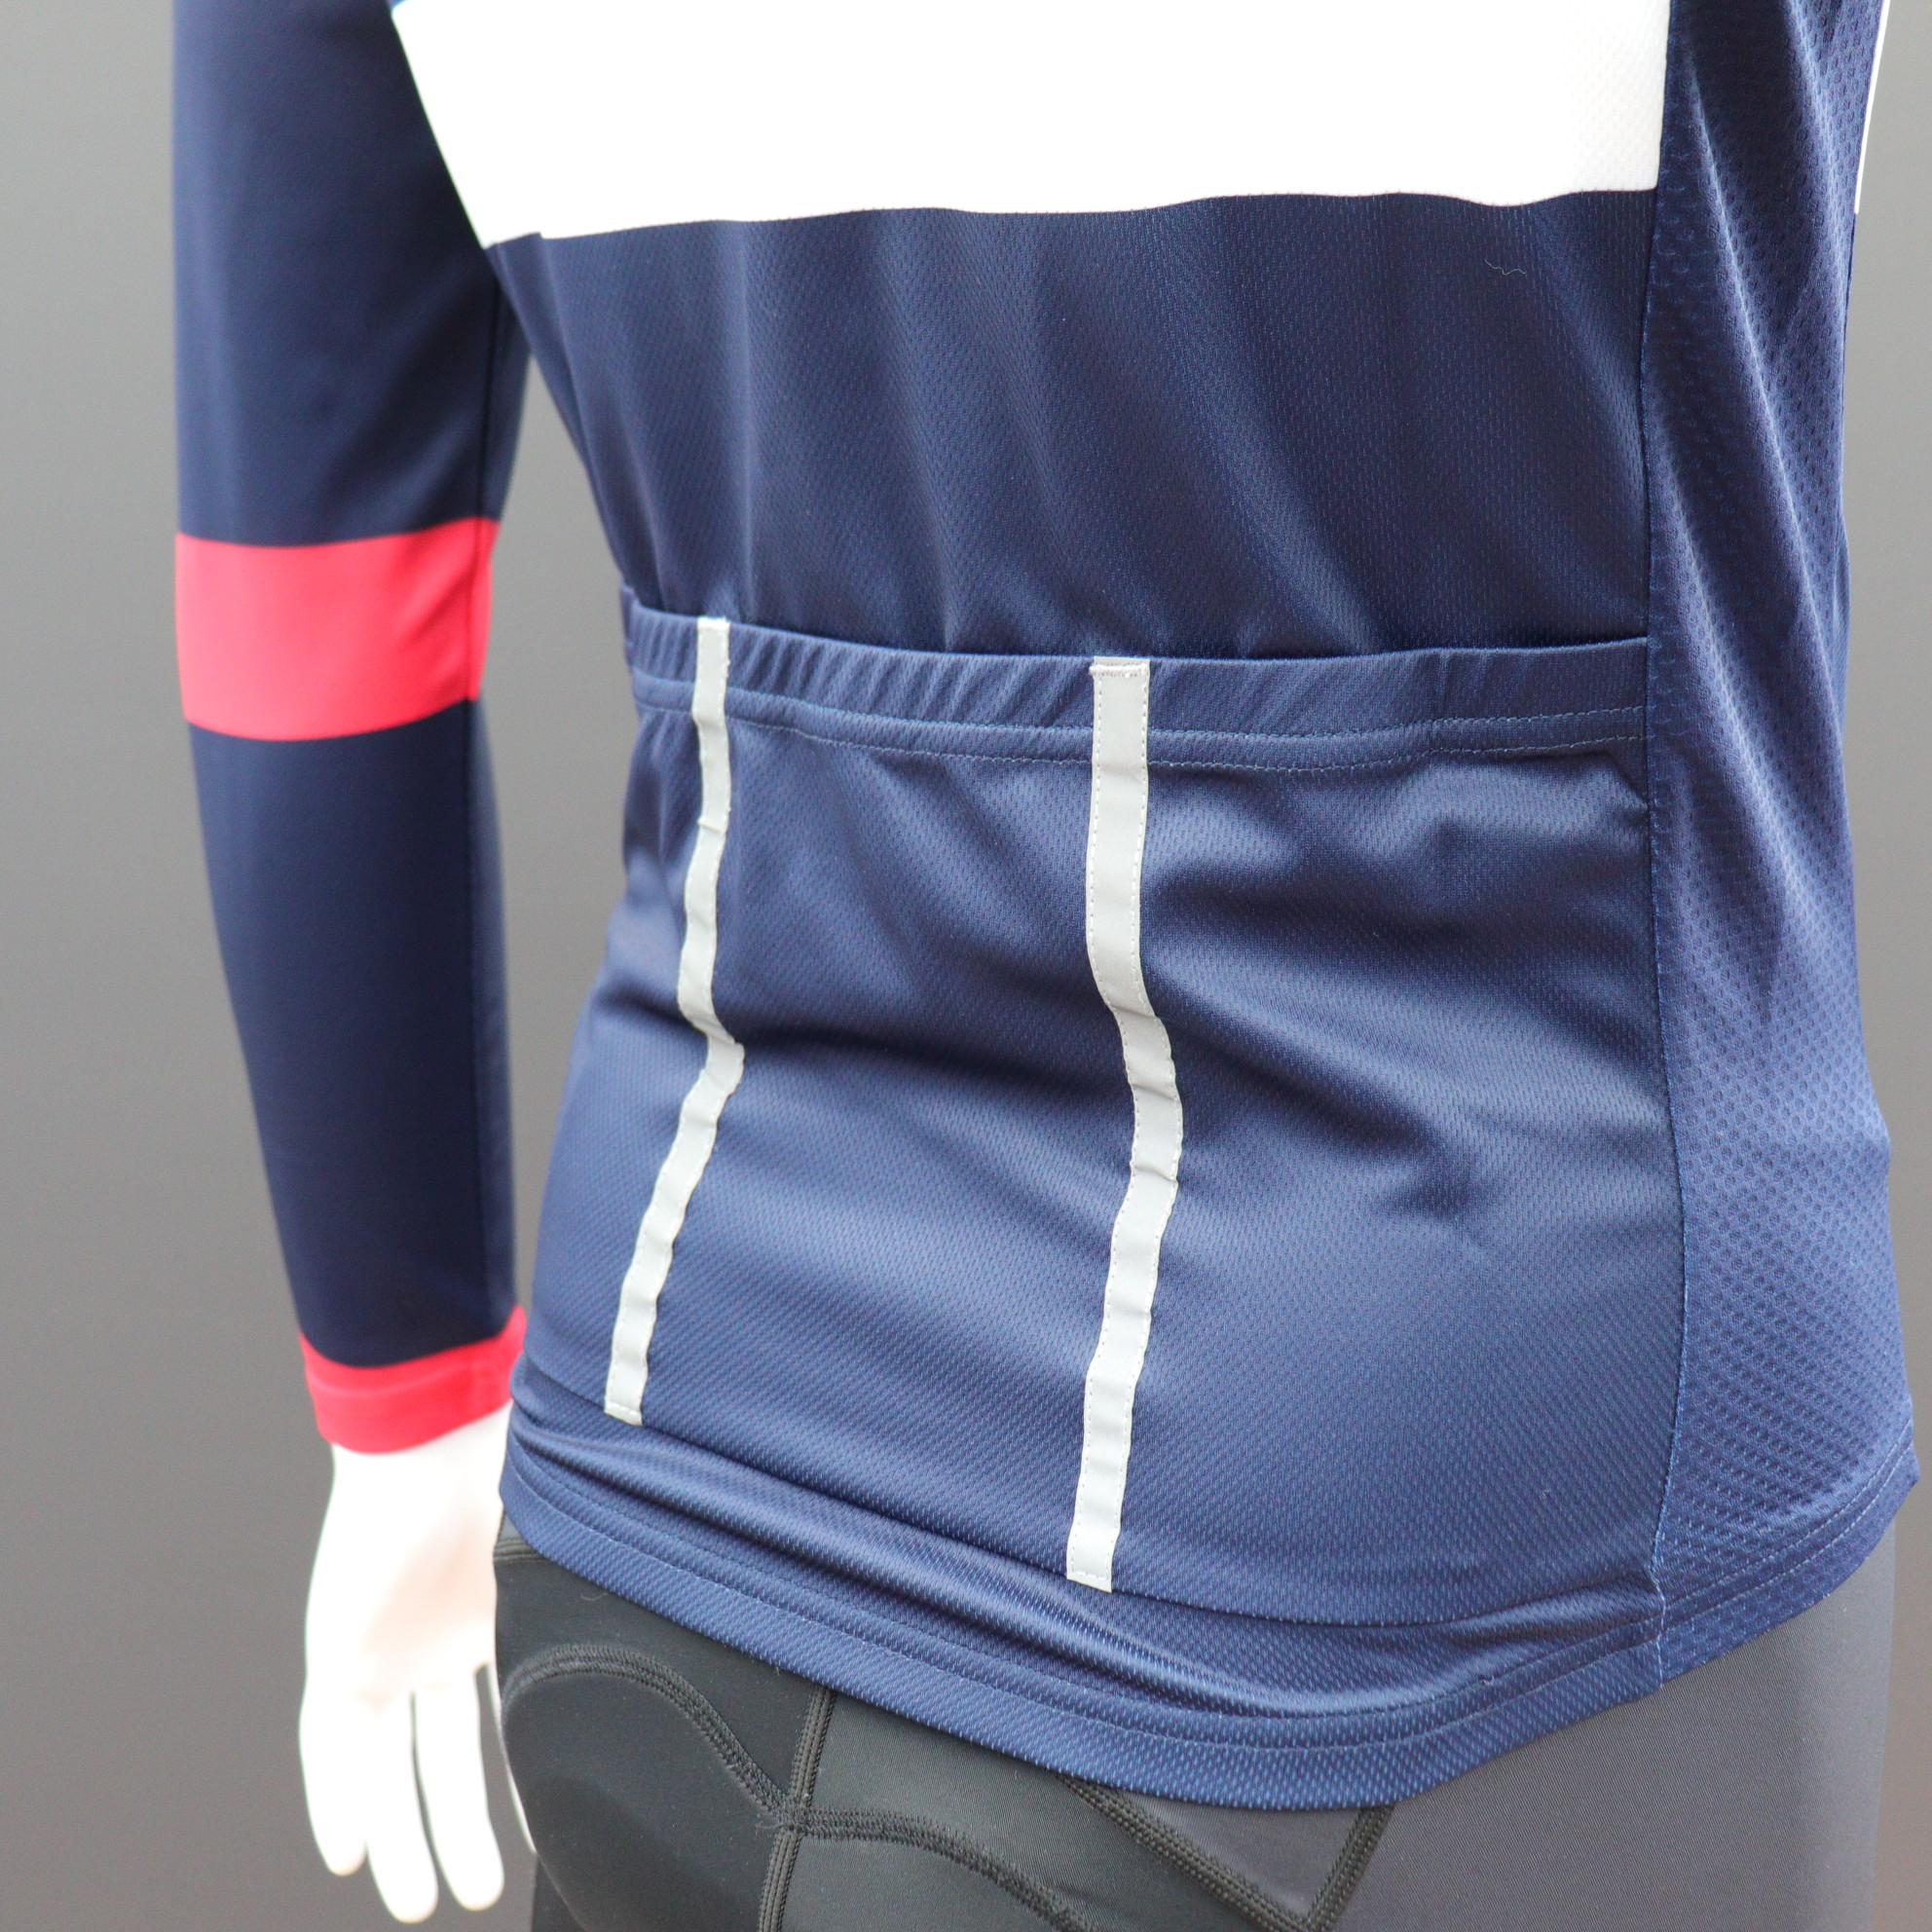 Long Sleeve Classic Cycle Jerseys - Reflective Pack